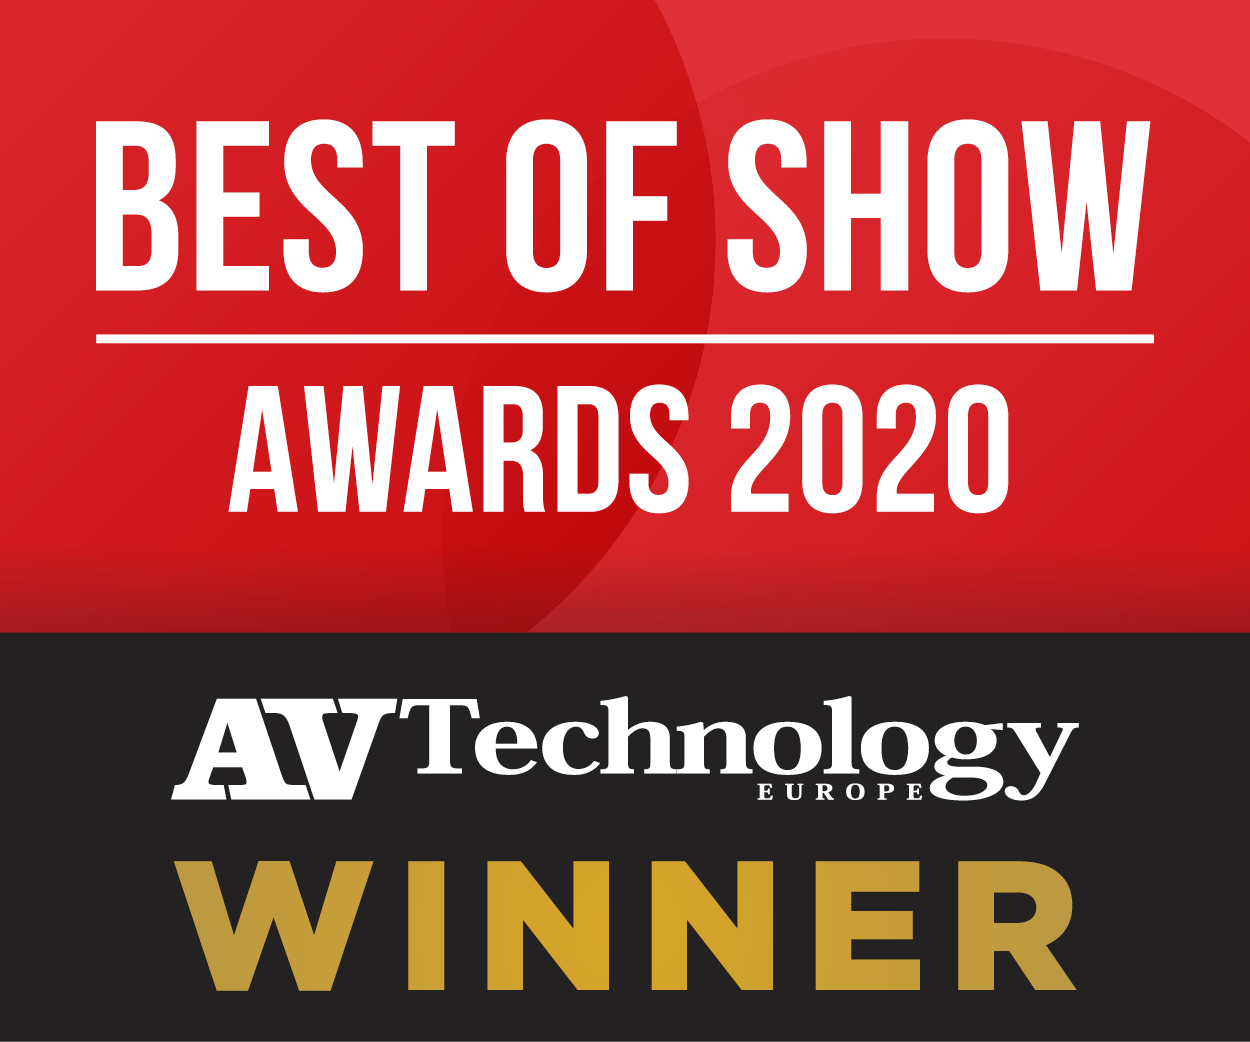 AV Technology Europe's Best of Show Award at ISE 2020